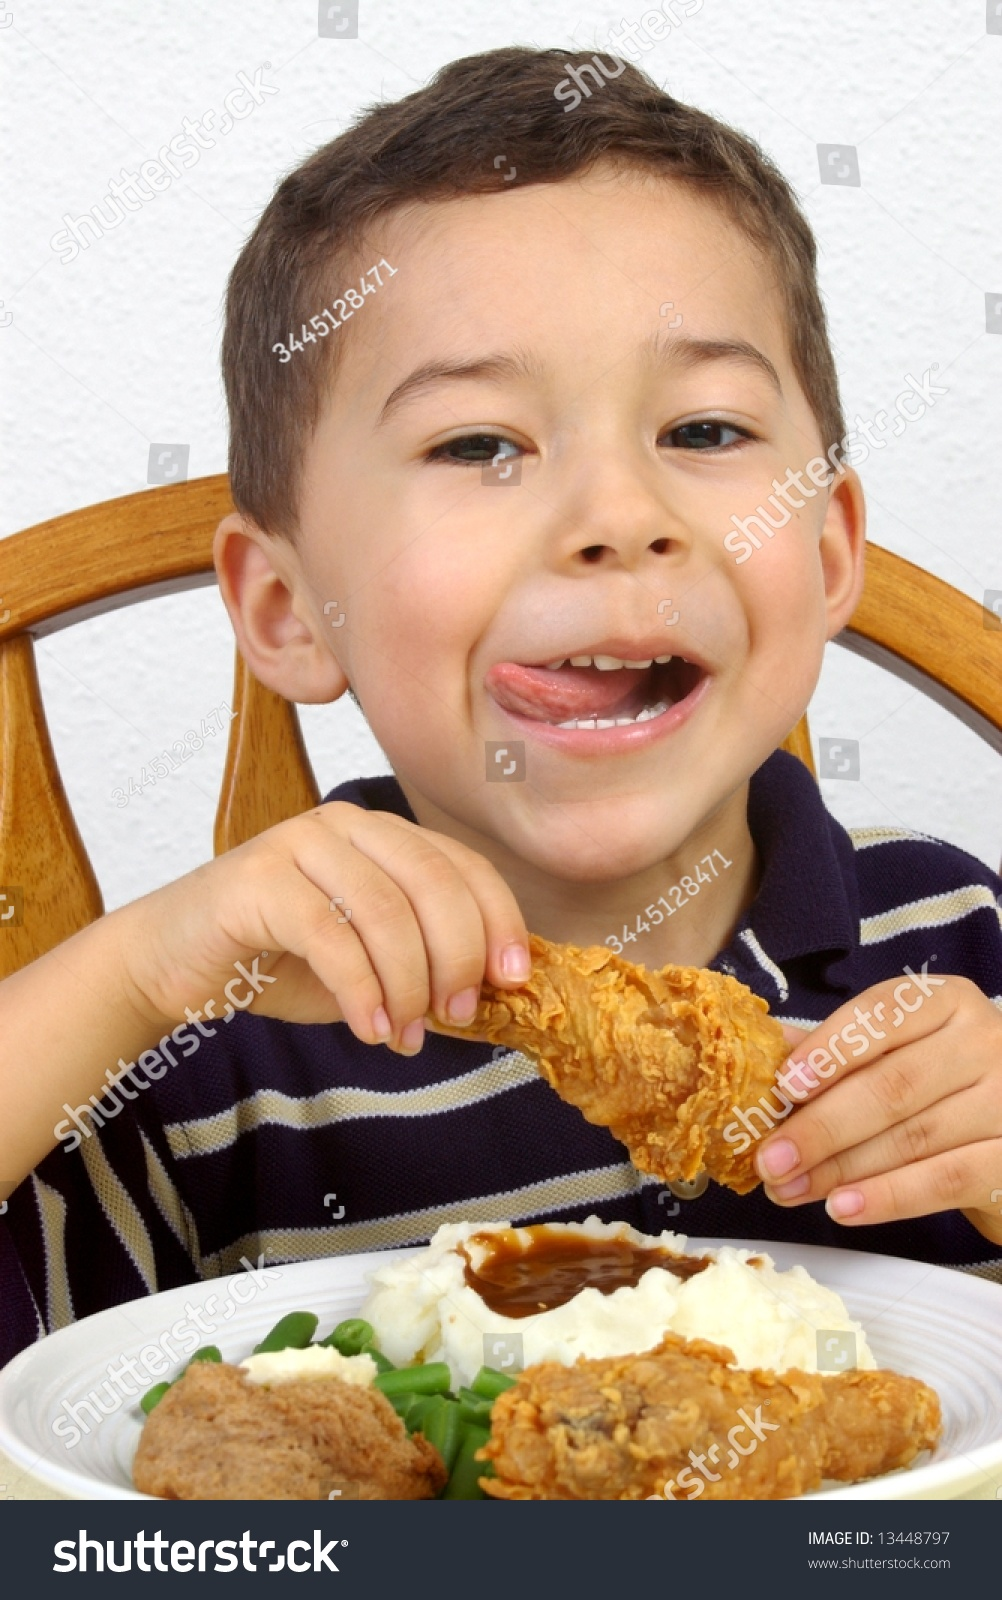 Boy Eating A Fried Chicken Dinner Stock Photo 13448797